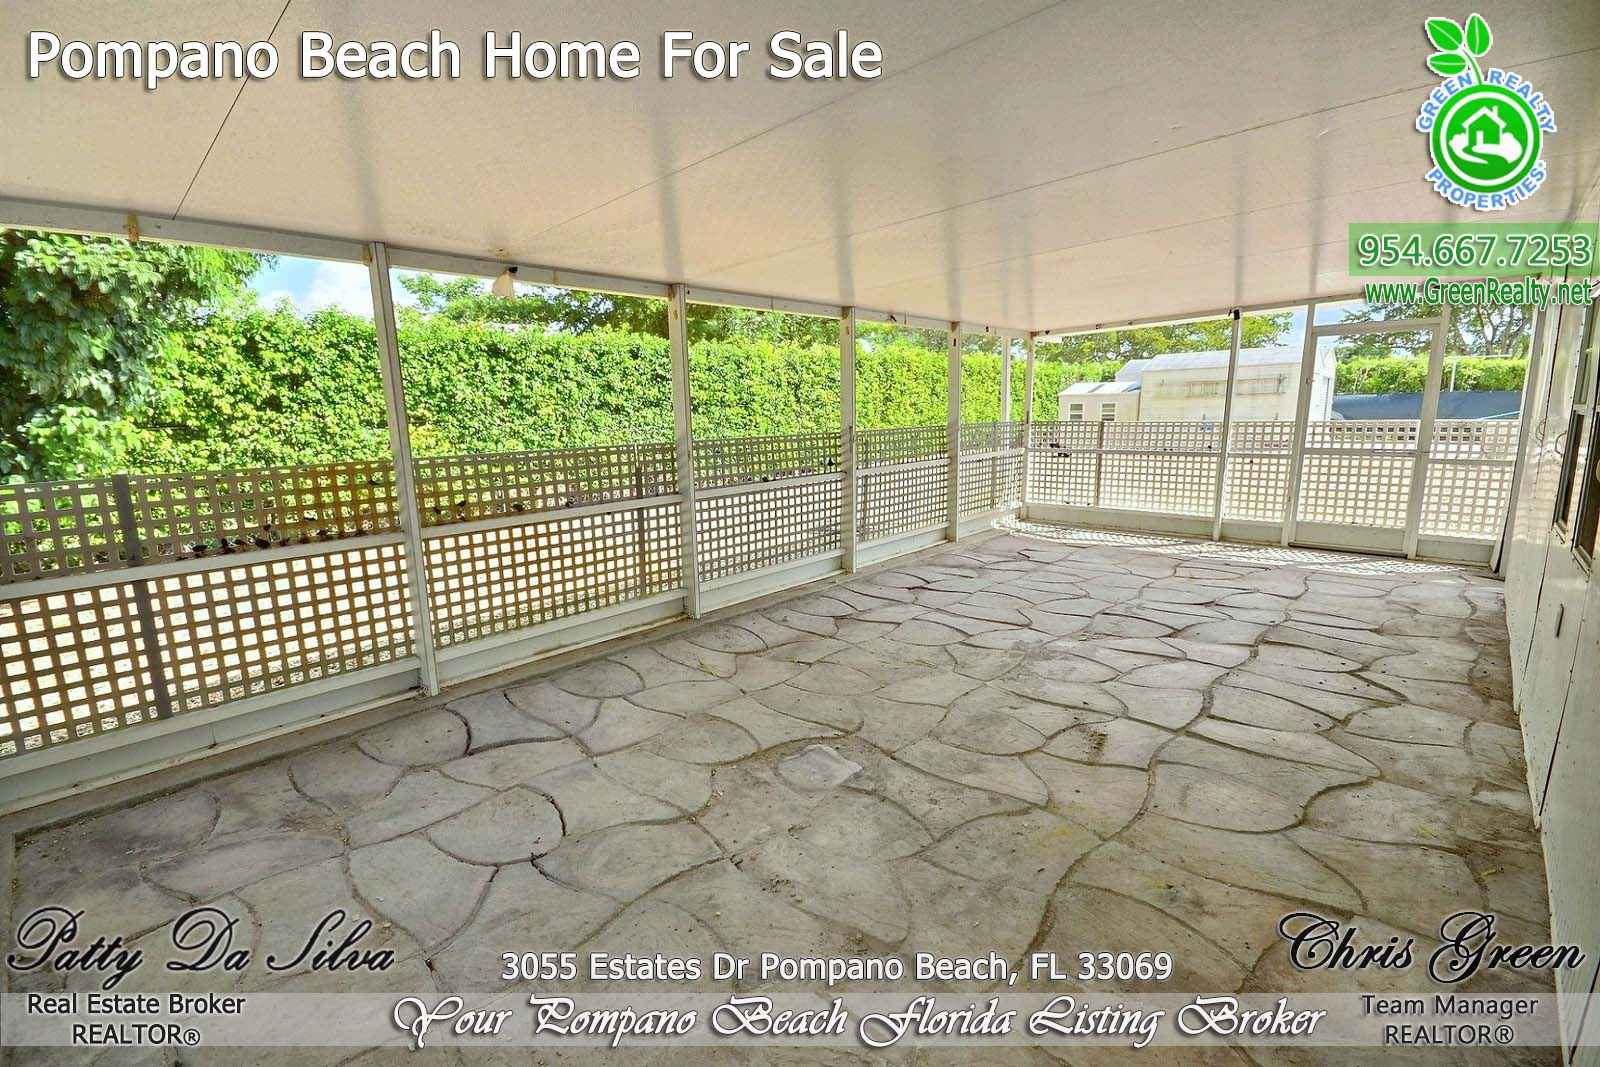 30 Pompano Beach Real Estate For Sale (4)